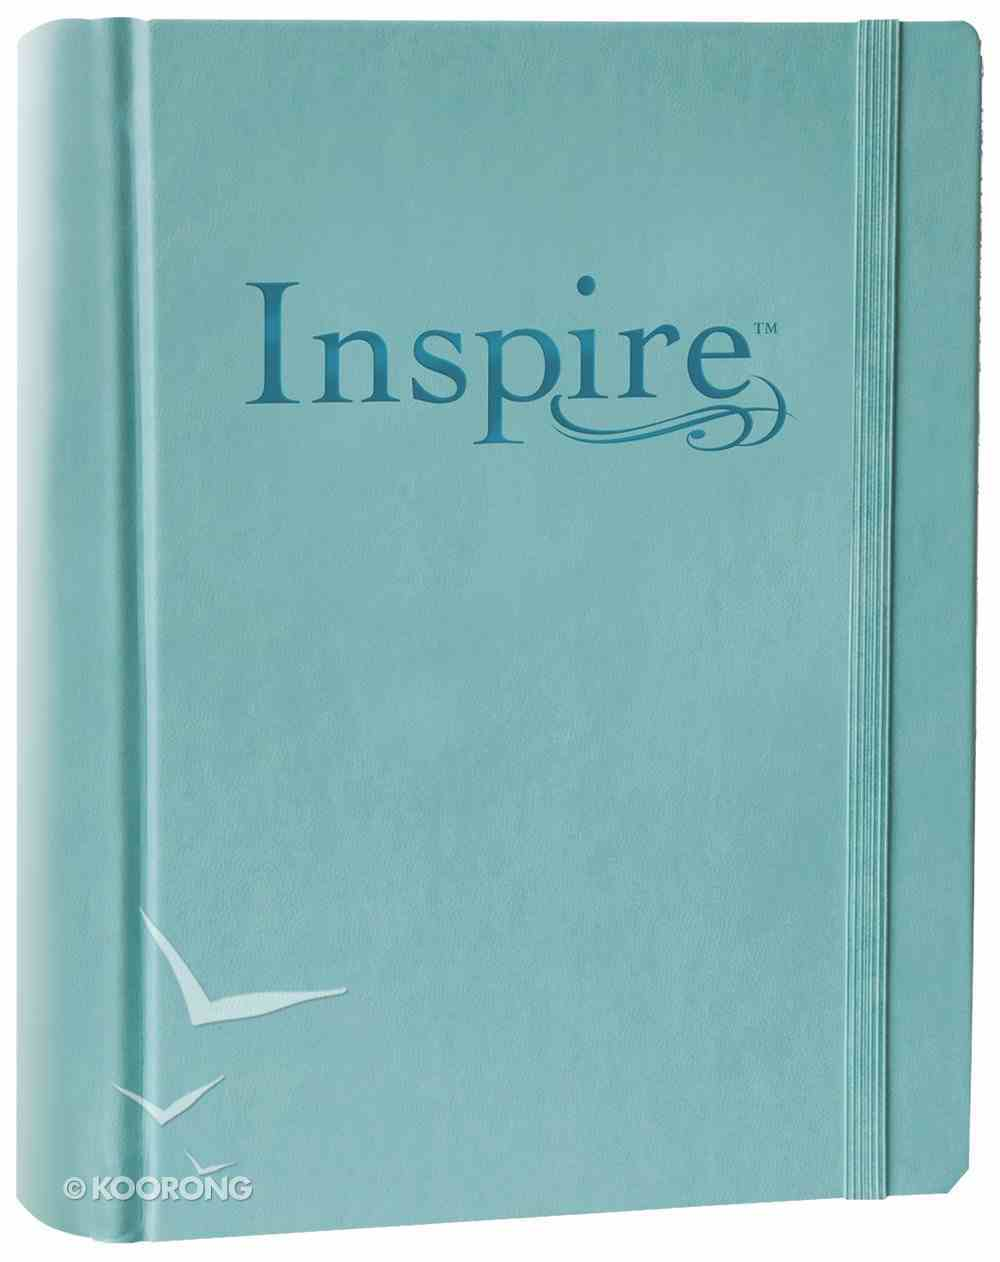 NLT Inspire Creative Journaling Bible Large Print Tranquil Blue (Black Letter Edition) Imitation Leather Over Hardback